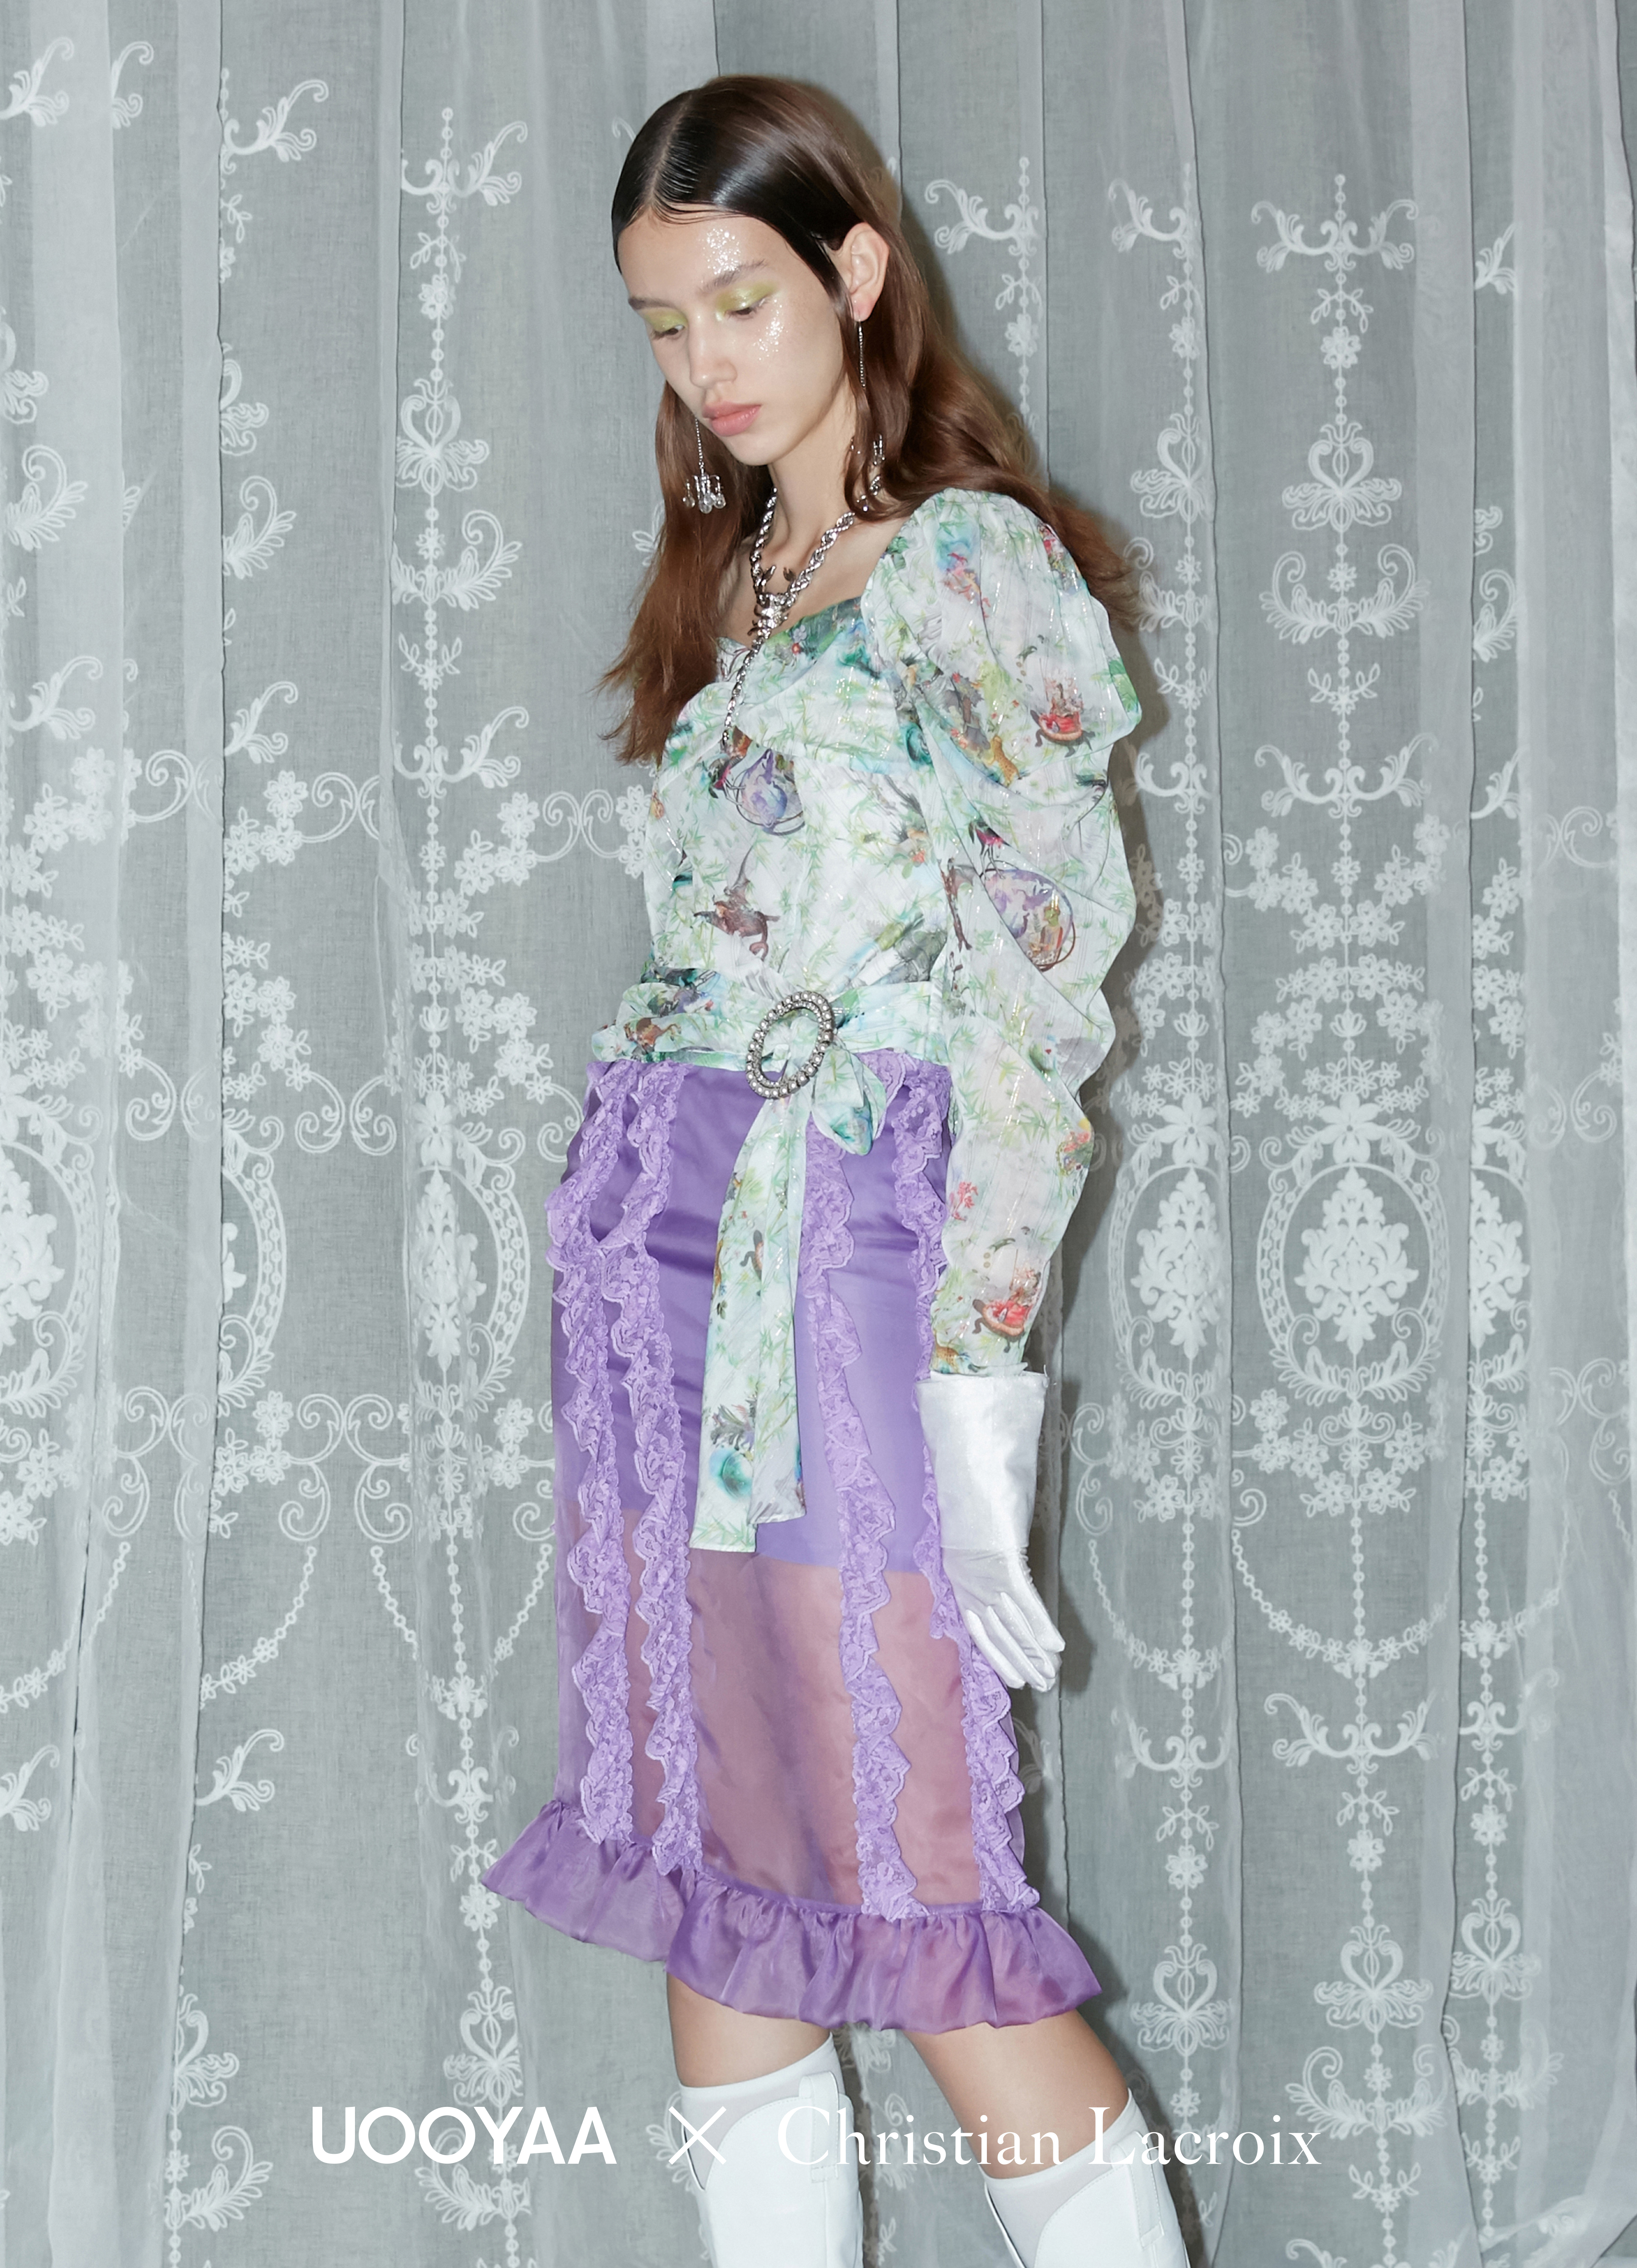 Style from Yooyaa's Christian Lacroix capsule collection